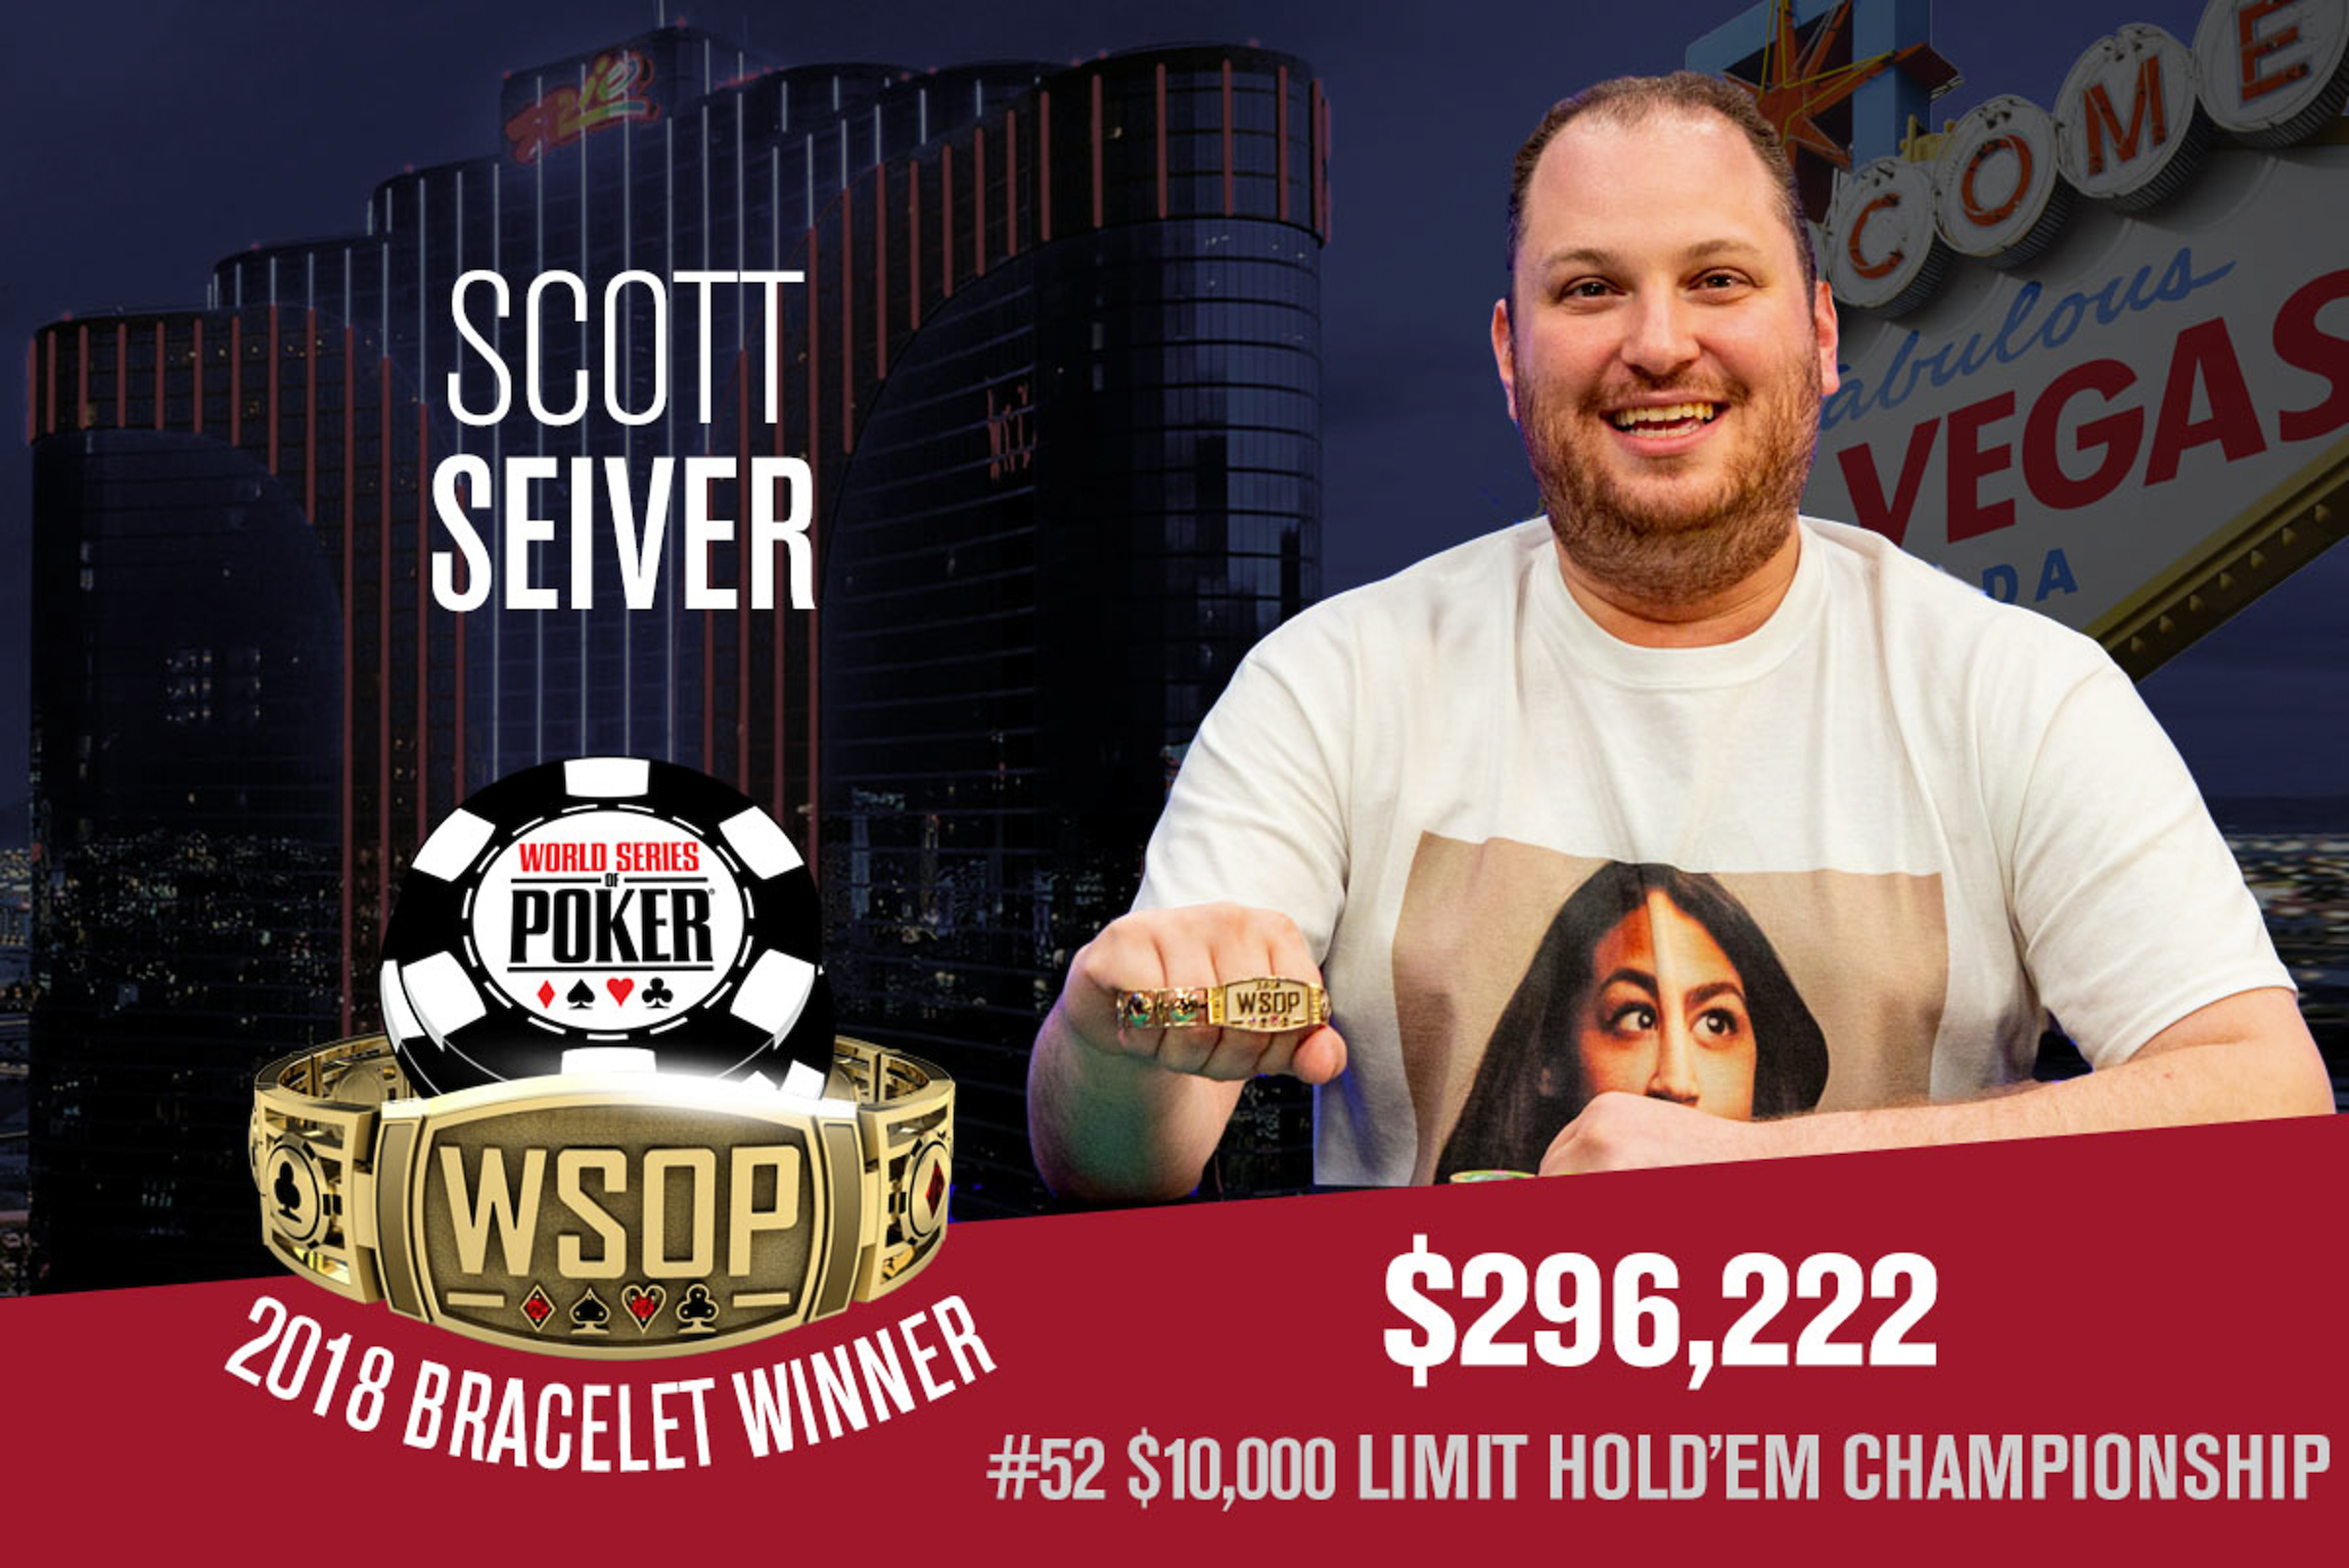 Scott Seiver Winner Photo